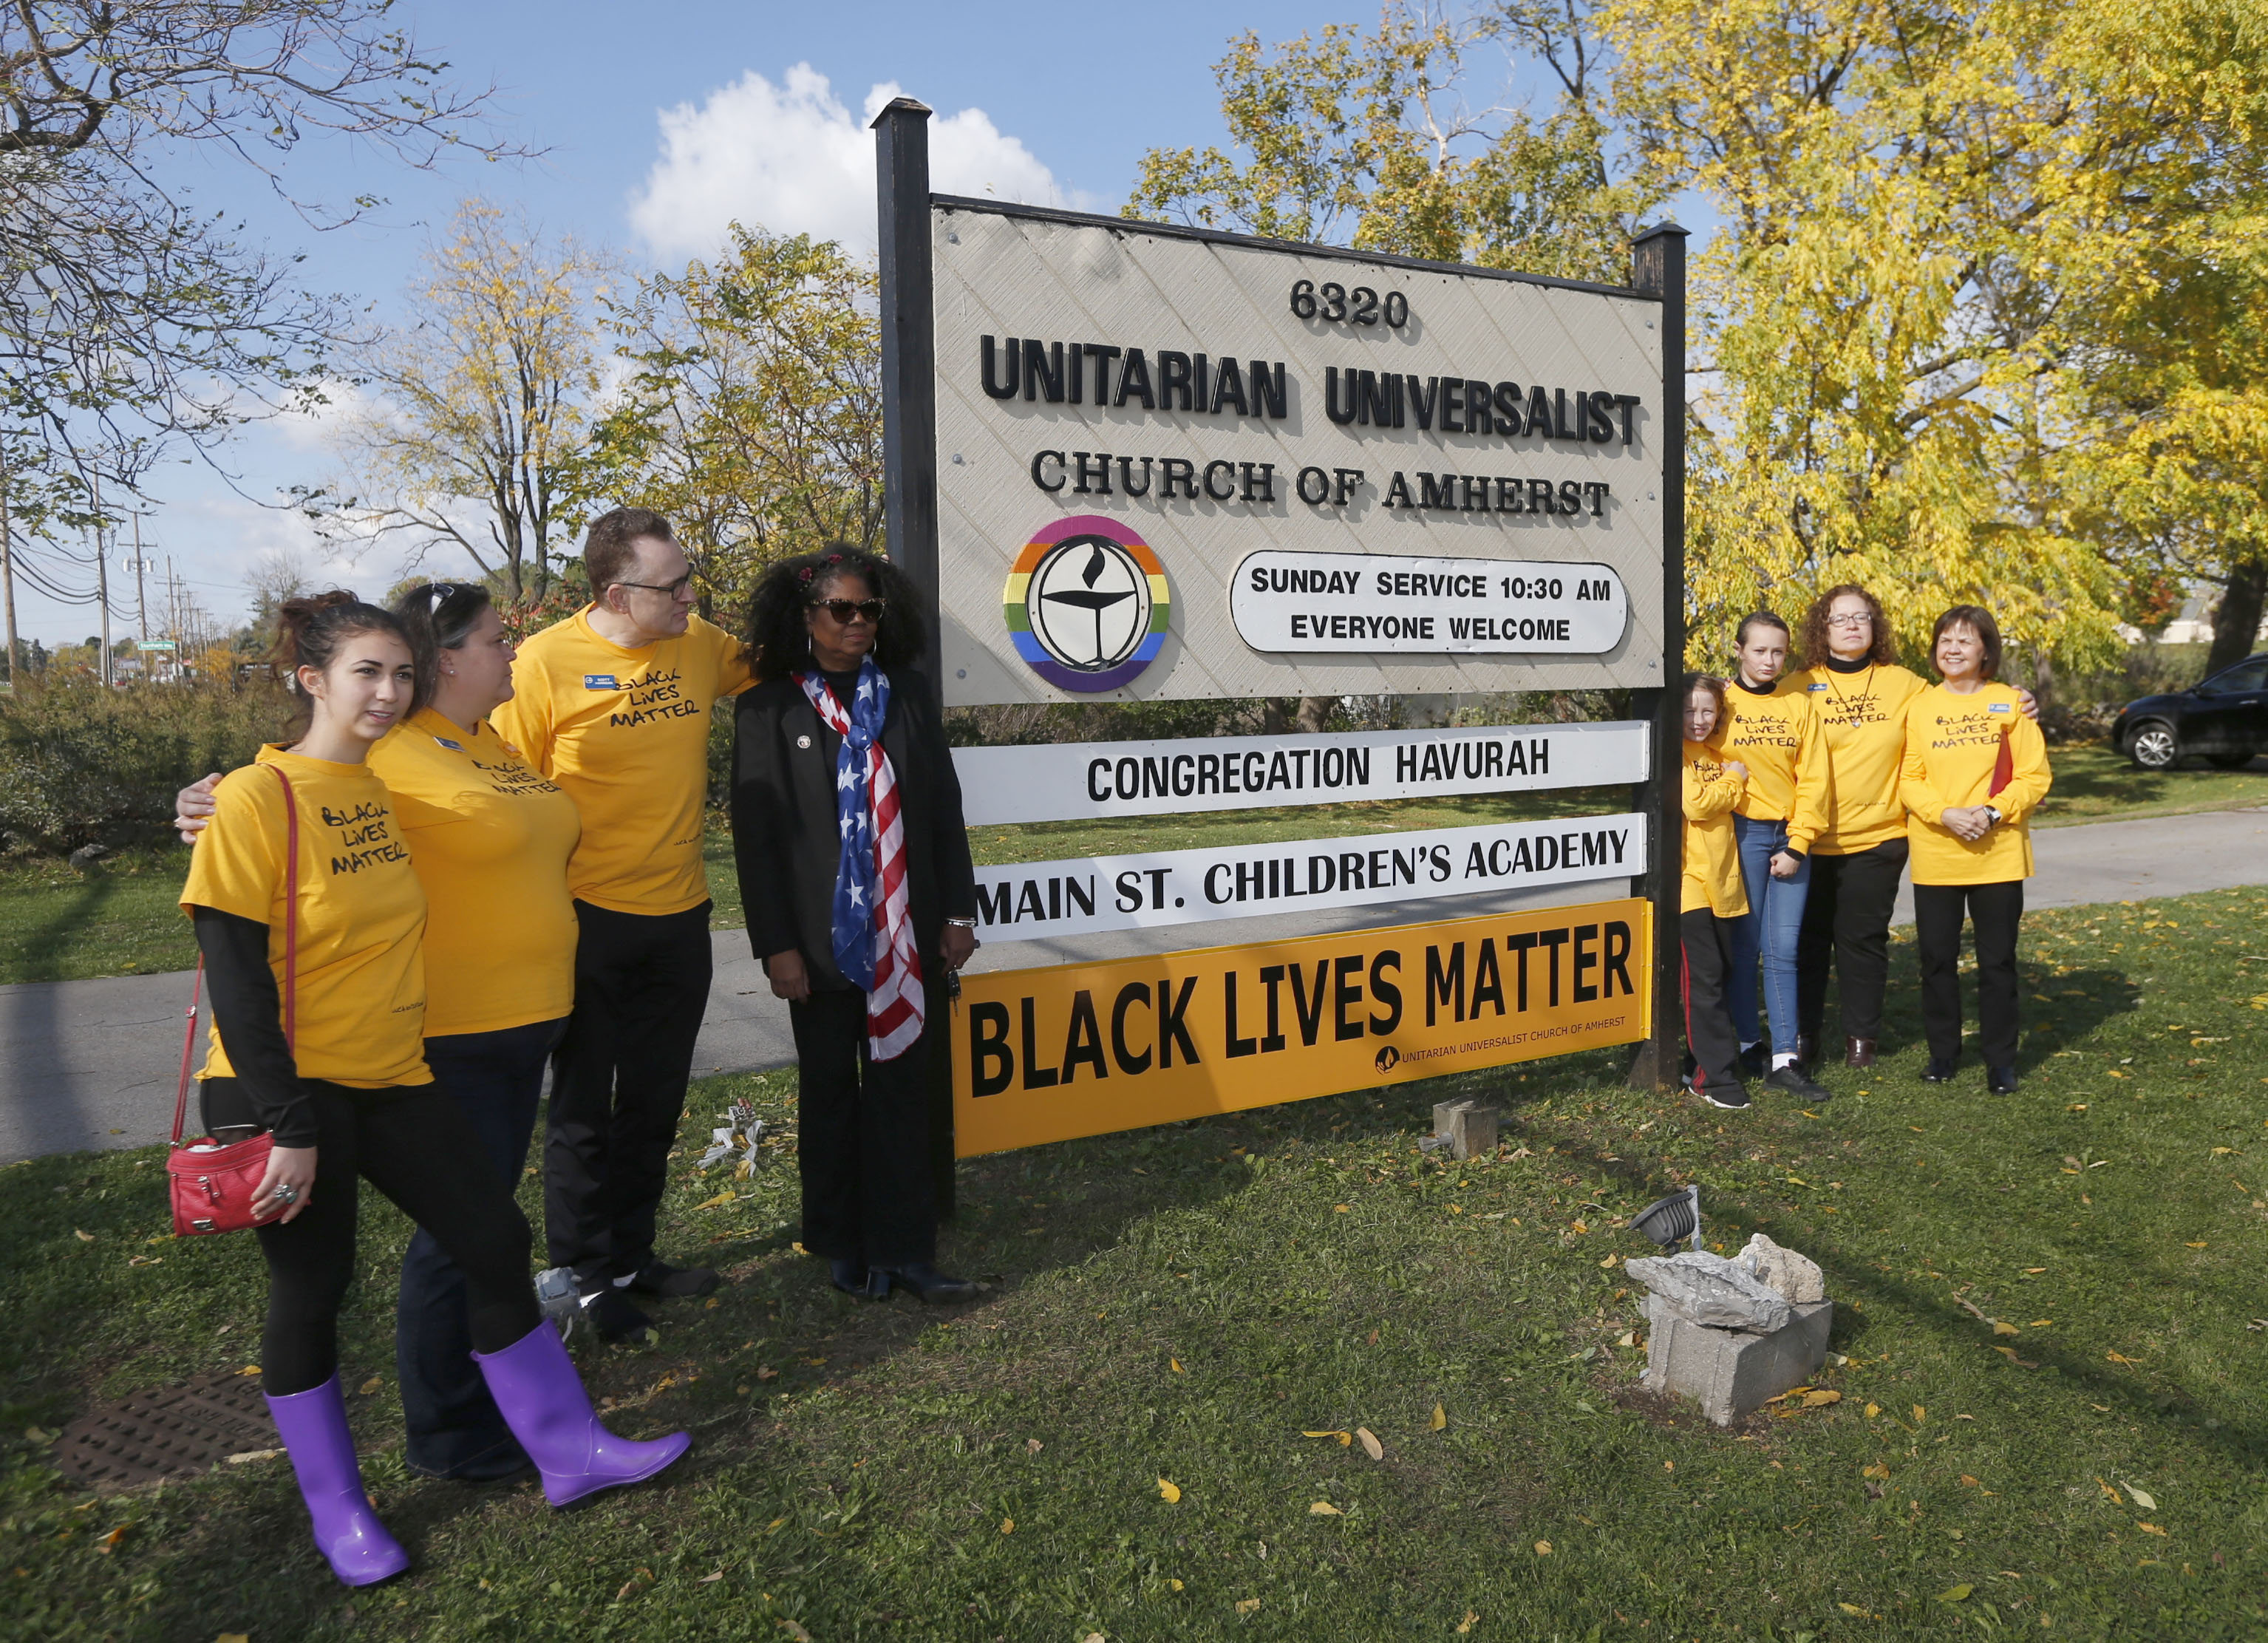 """Clergy and members of the Unitarian Universalist Church of Amherst took turns posing with the """"Black Lives matter"""" sign in front of said church on Main Street in Williamsville on Sunday, Oct. 23, 2016. (Robert Kirkham/Buffalo News)"""